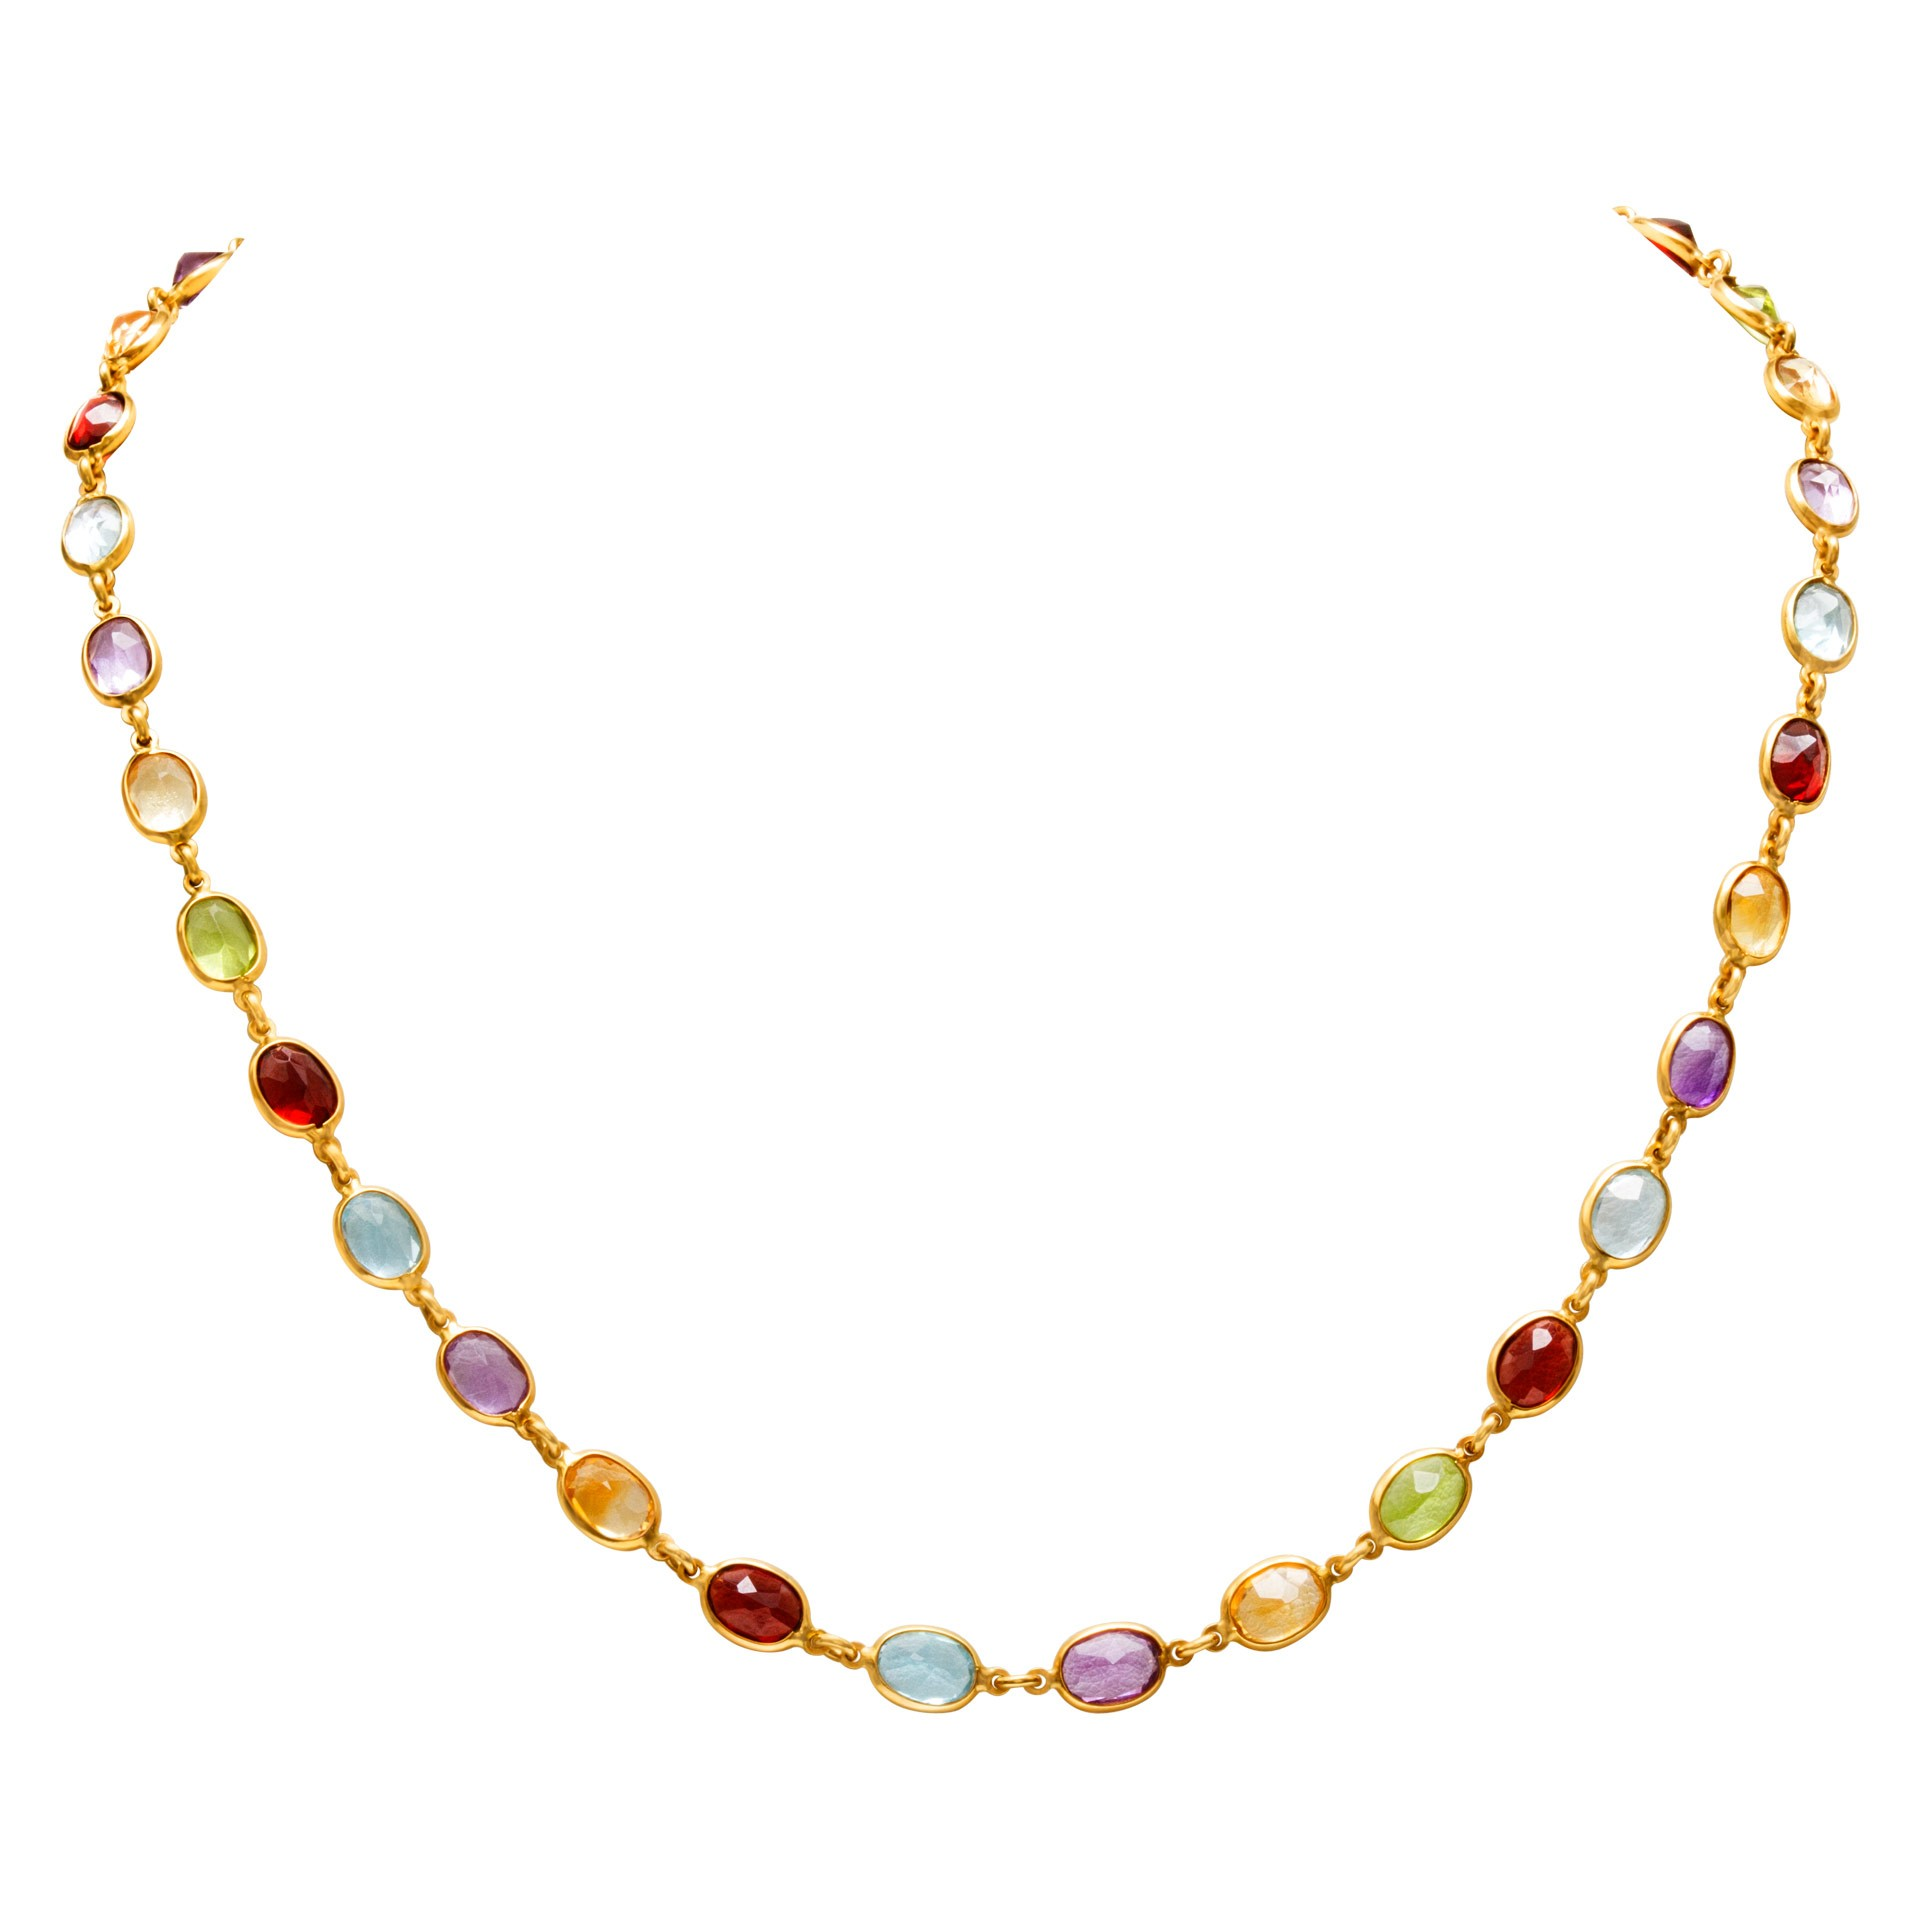 Fine Jewelry for Less than $1000: Semi-Precious Stones Necklace